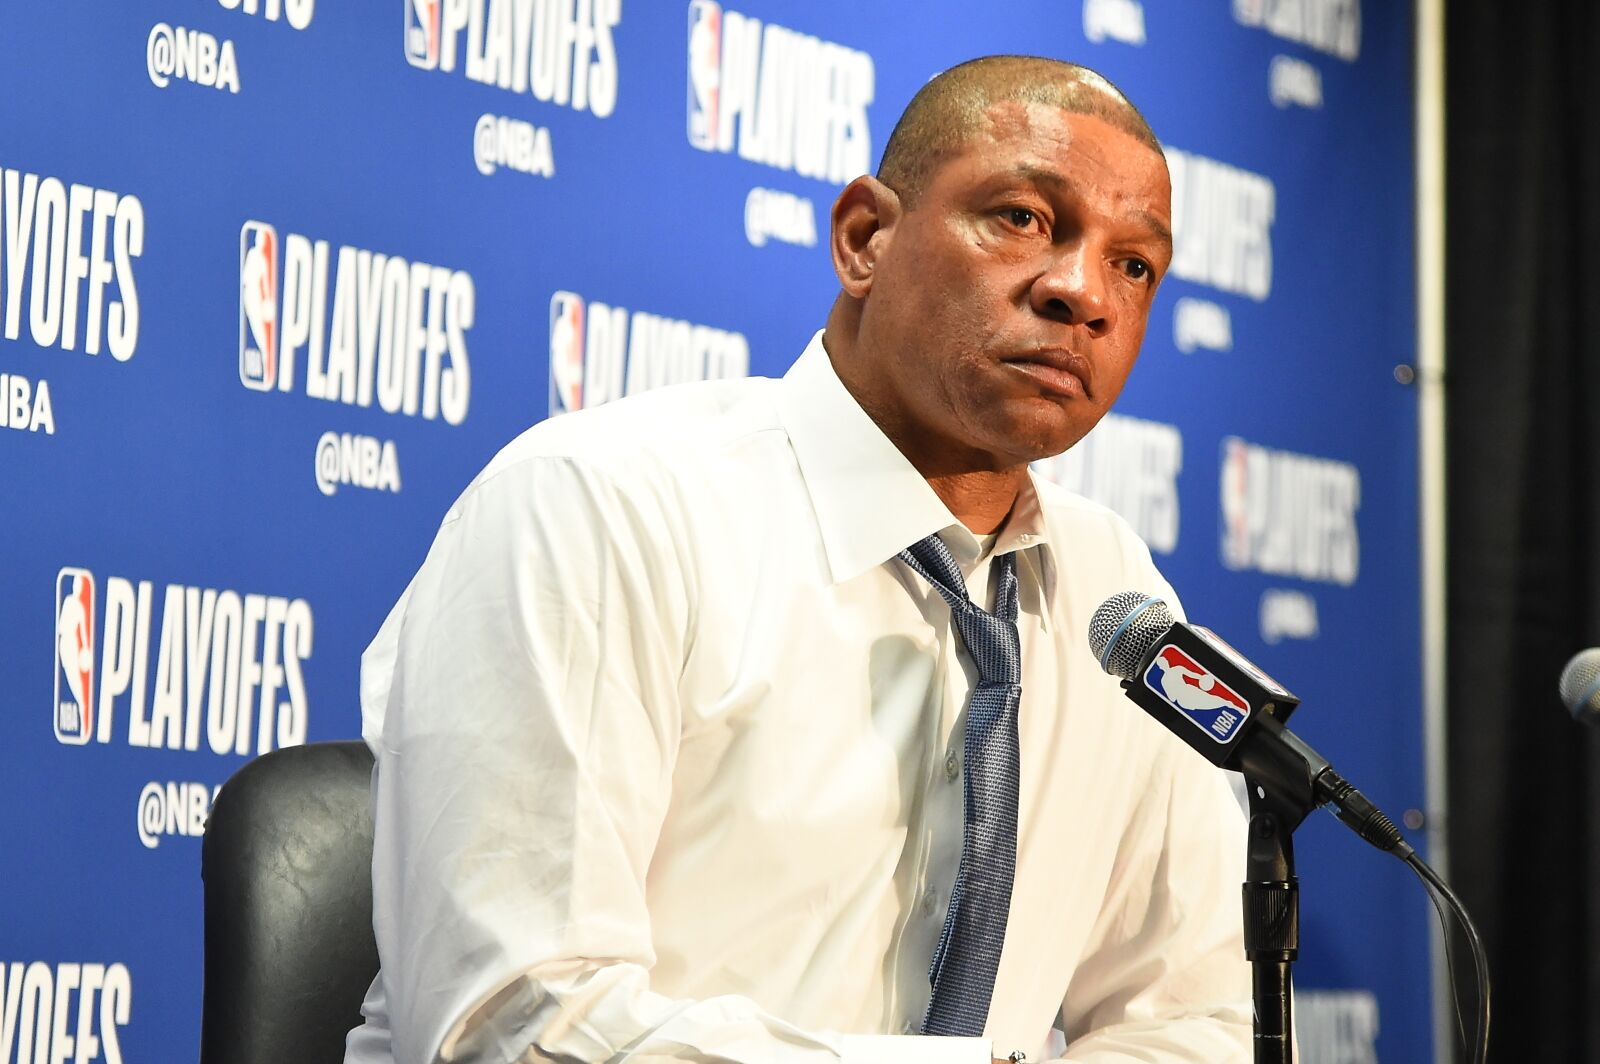 After Doc Rivers Fine, the NBA Needs To Re-Assess Tampering Rules